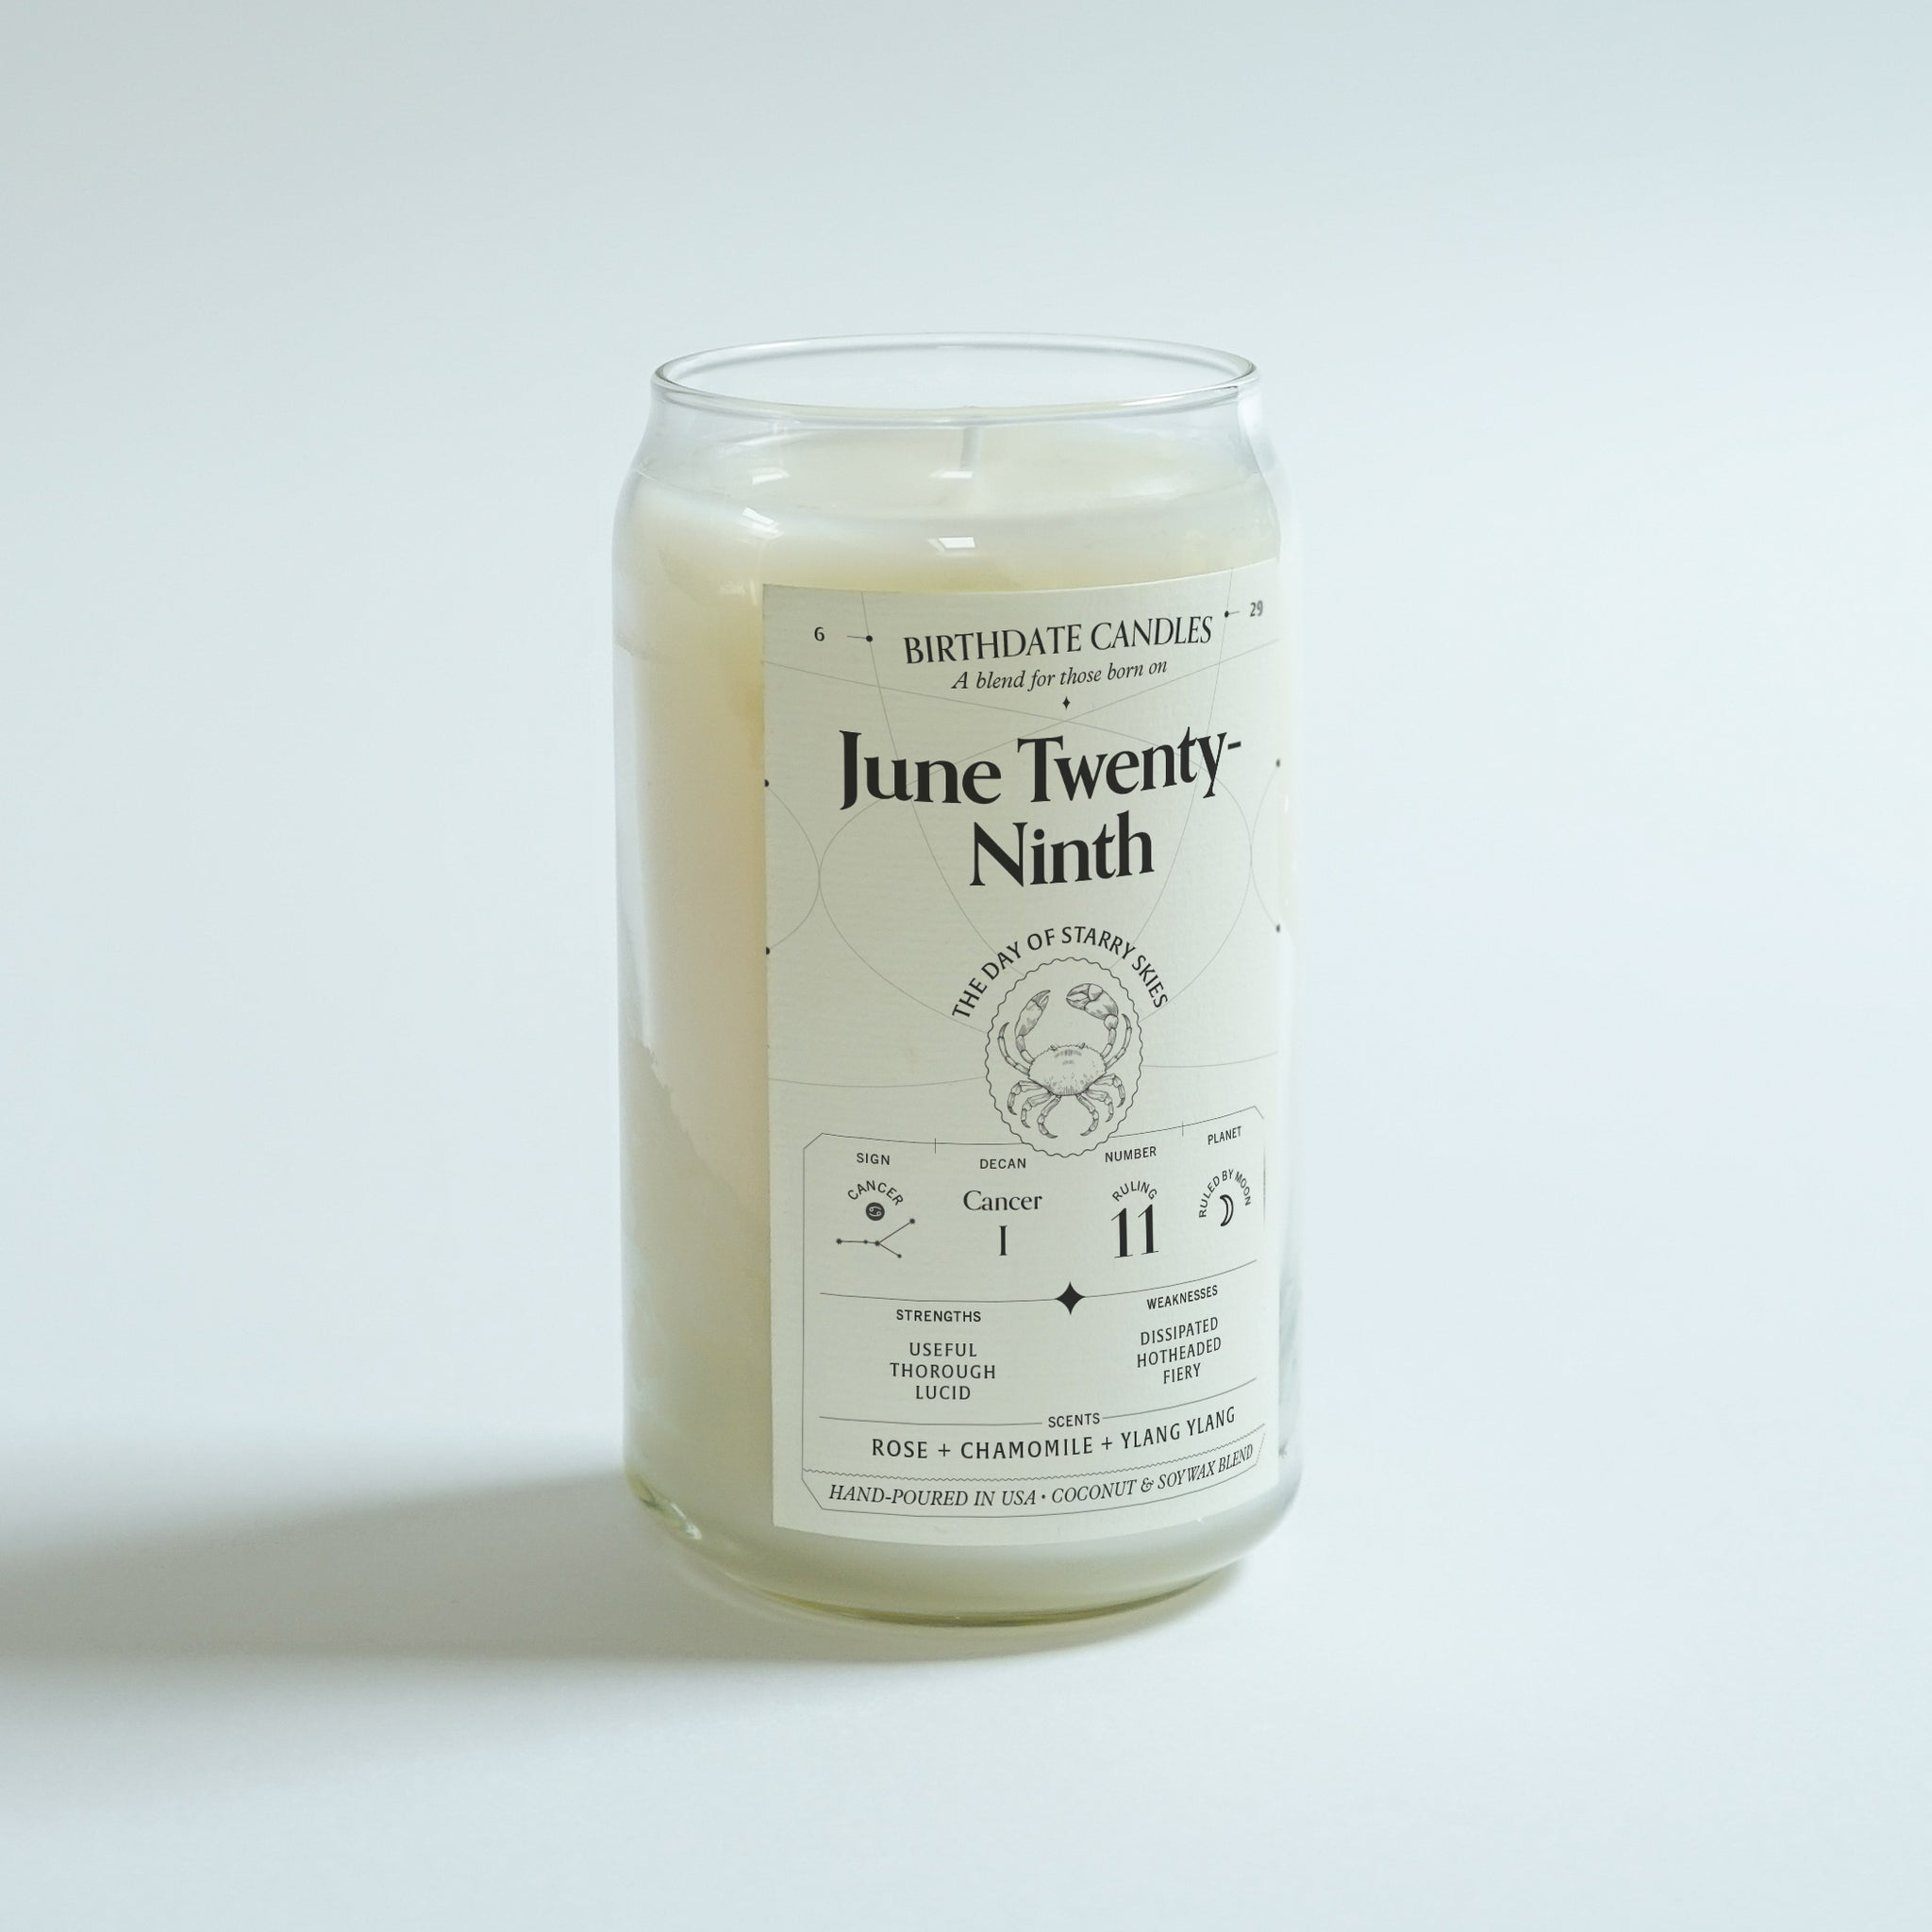 The June Twenty-Ninth Candle